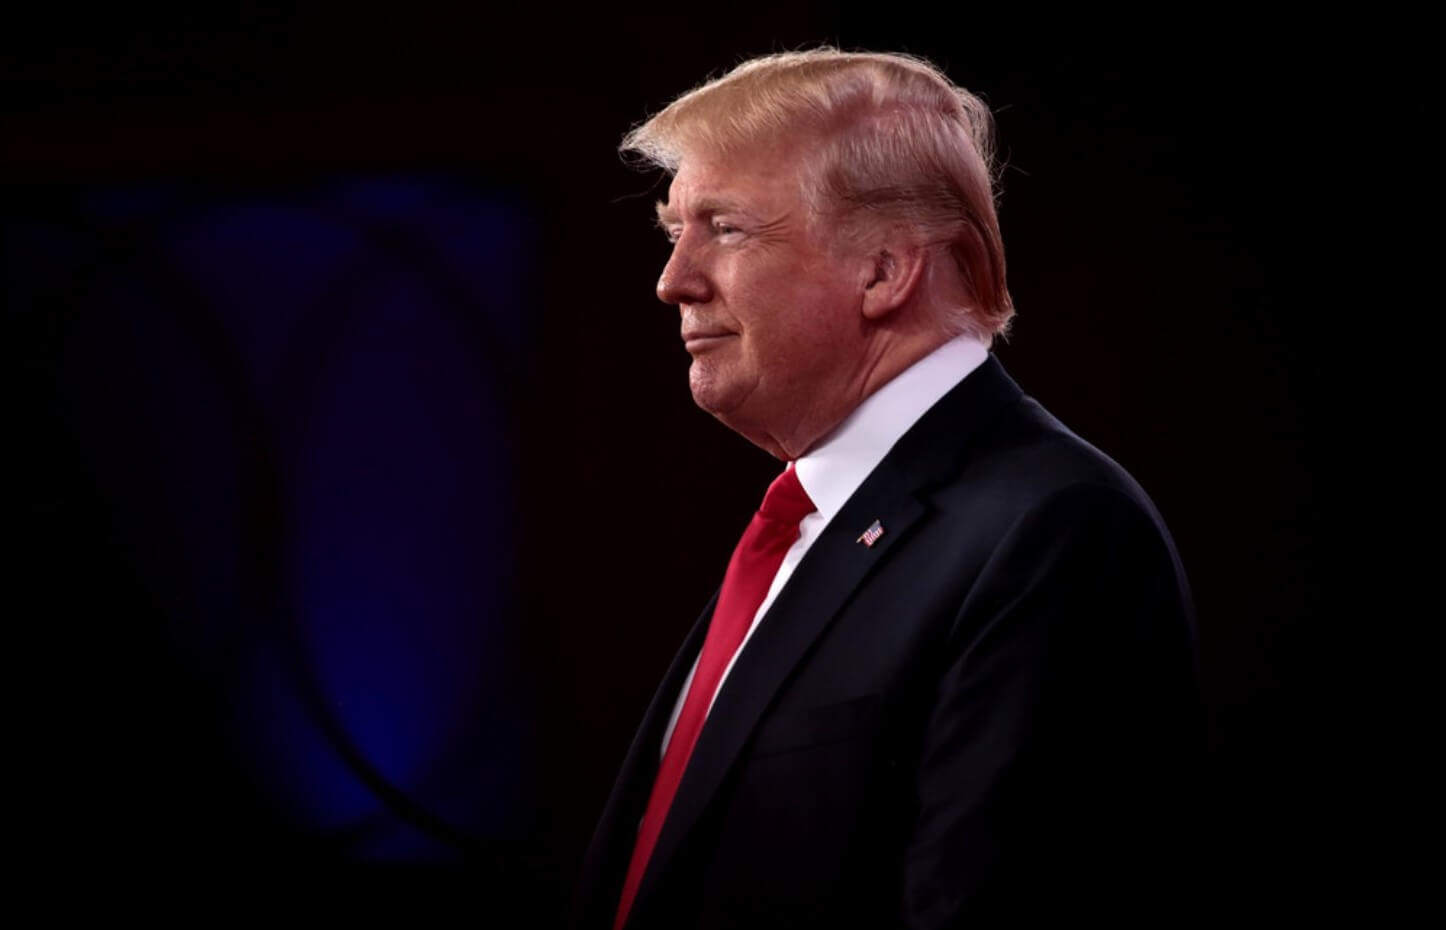 Local Republican Officials Ponder Trump's Chances to Carry Their Battleground State in 2020